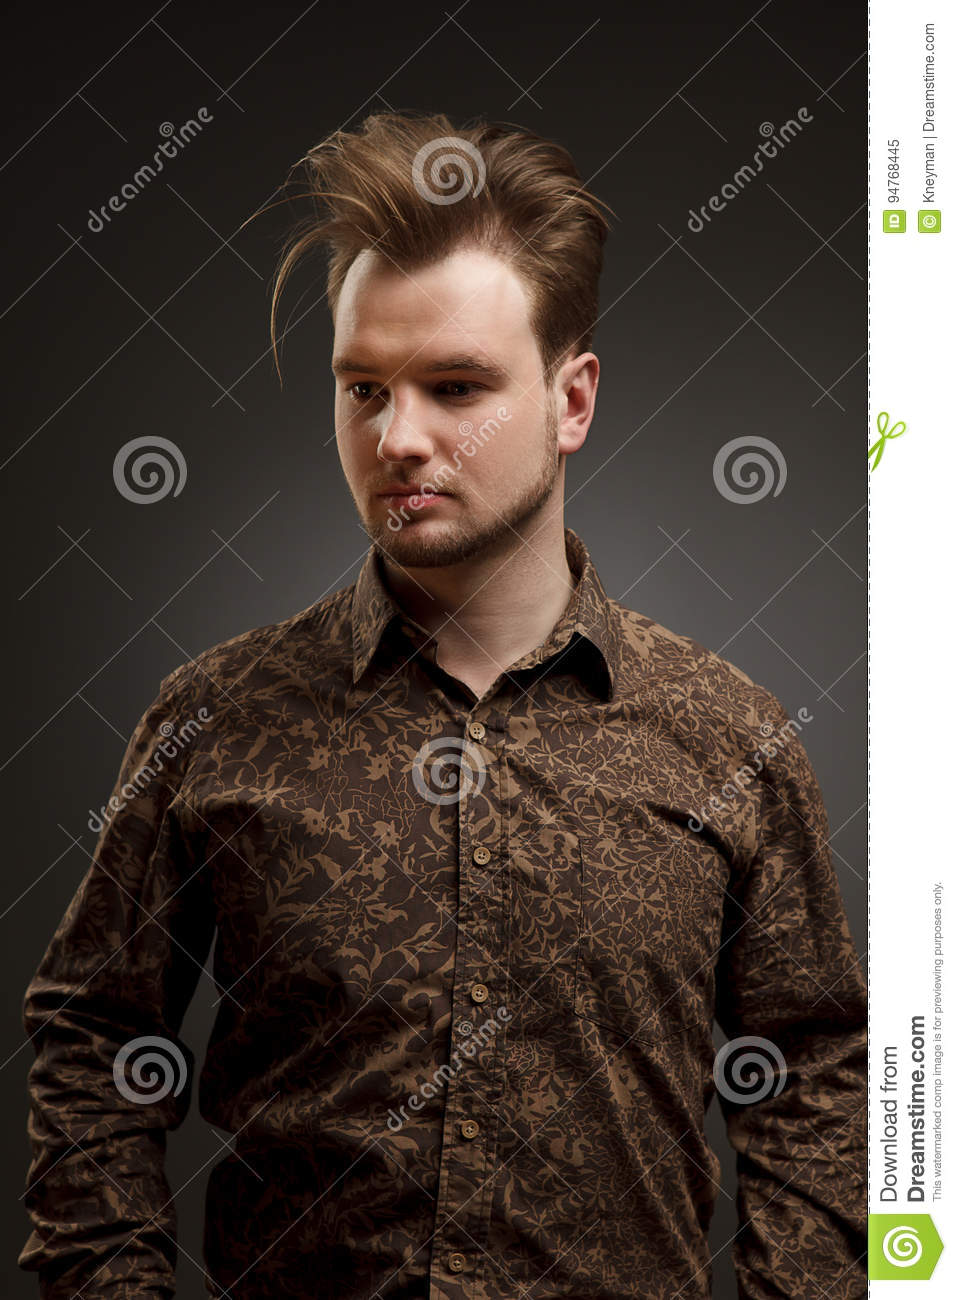 Man Haircut Stylish Young Man With Trendy Hairstyle Pose In Studio